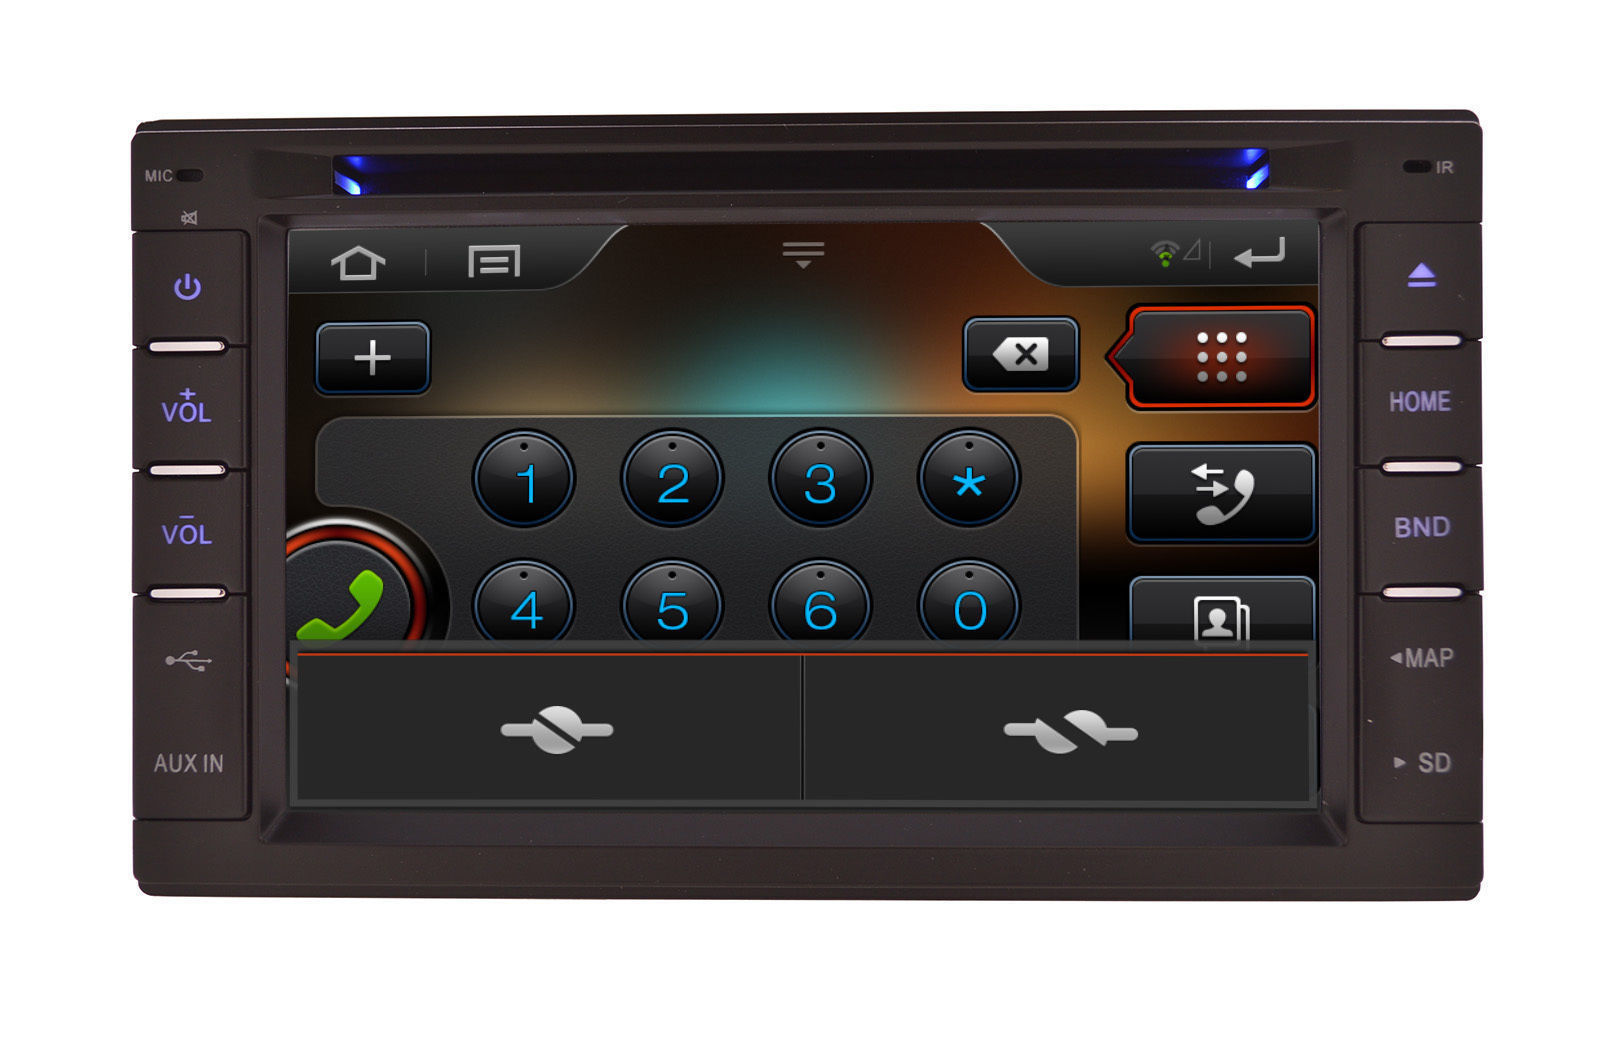 IN DASH DOUBLE DIN MULTIMEDIA NAVIGATION RADIO SYSTEM WITH BLUETOOTH GPS CD DVD image 12